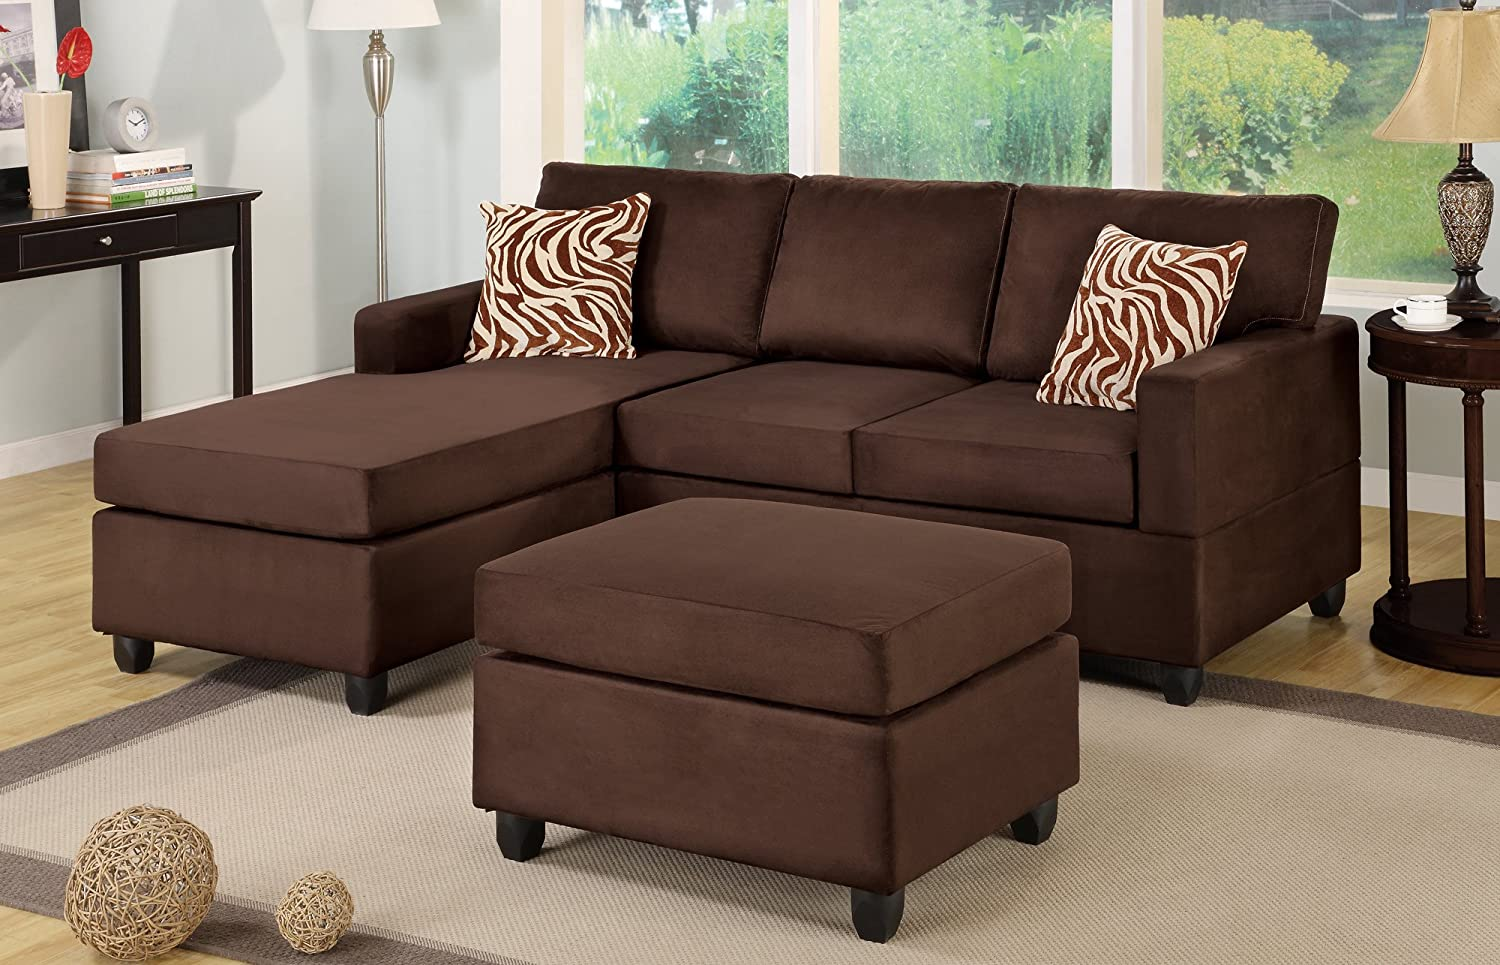 Amazoncom Bobkona Manhattan Reversible Microfiber 3piece Sectional Sofa Set  Chocolate Kitchen U0026 Dining. Leather Sofa Sectional Sofa Livingroom ... Part 34